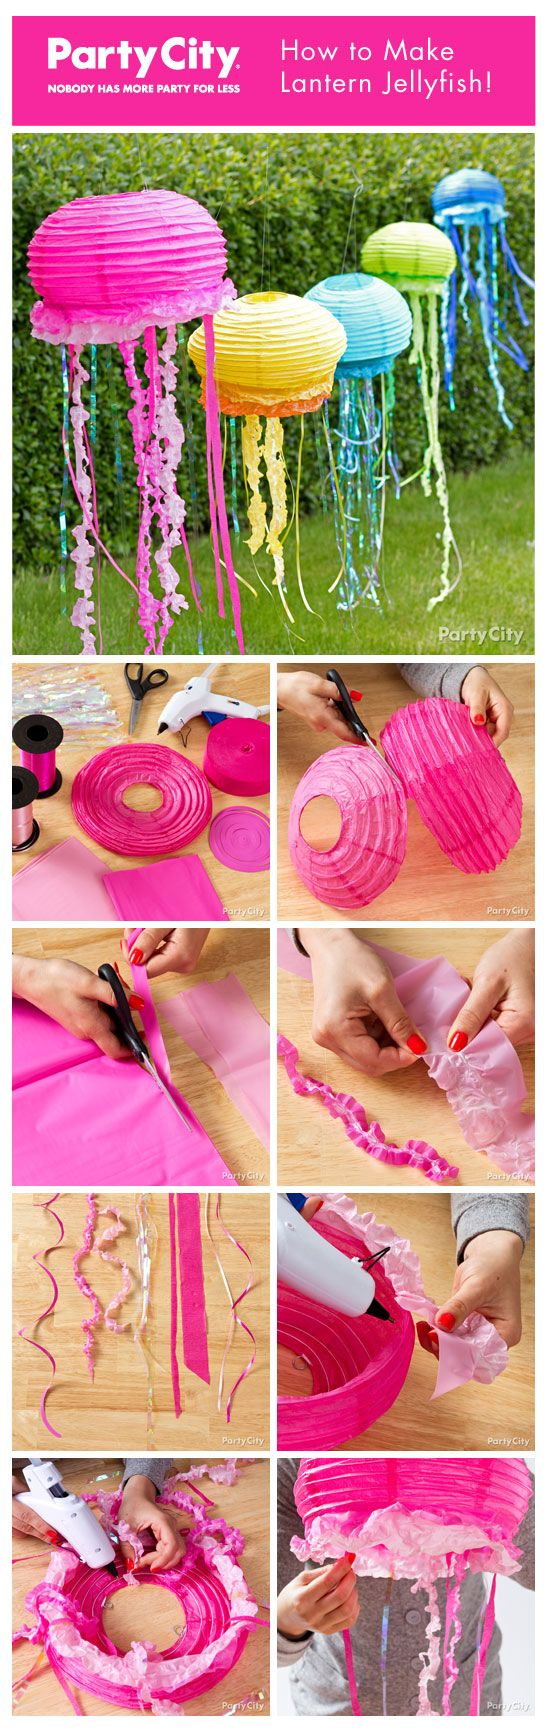 top ideas about party time bubble guppies nick lantern jellyfish hanging jellyfish jellyfish paper jellyfish crafts vbs2016 beachparty ocean themes beach themes beach party theme for kids